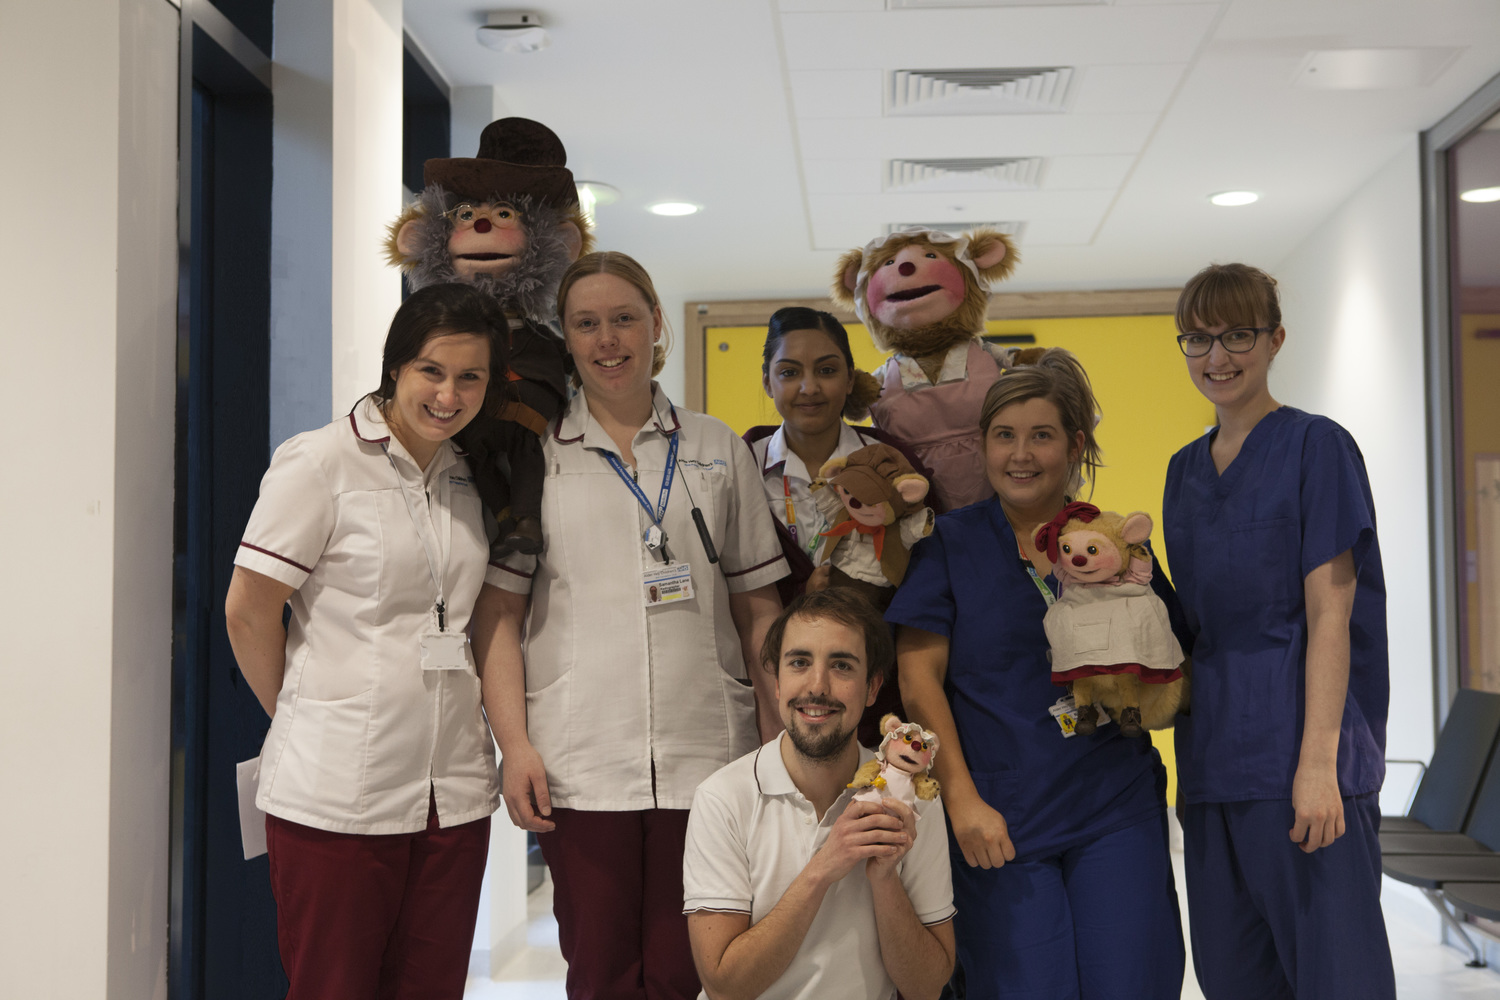 Alder Hey Staff with Hardleeys